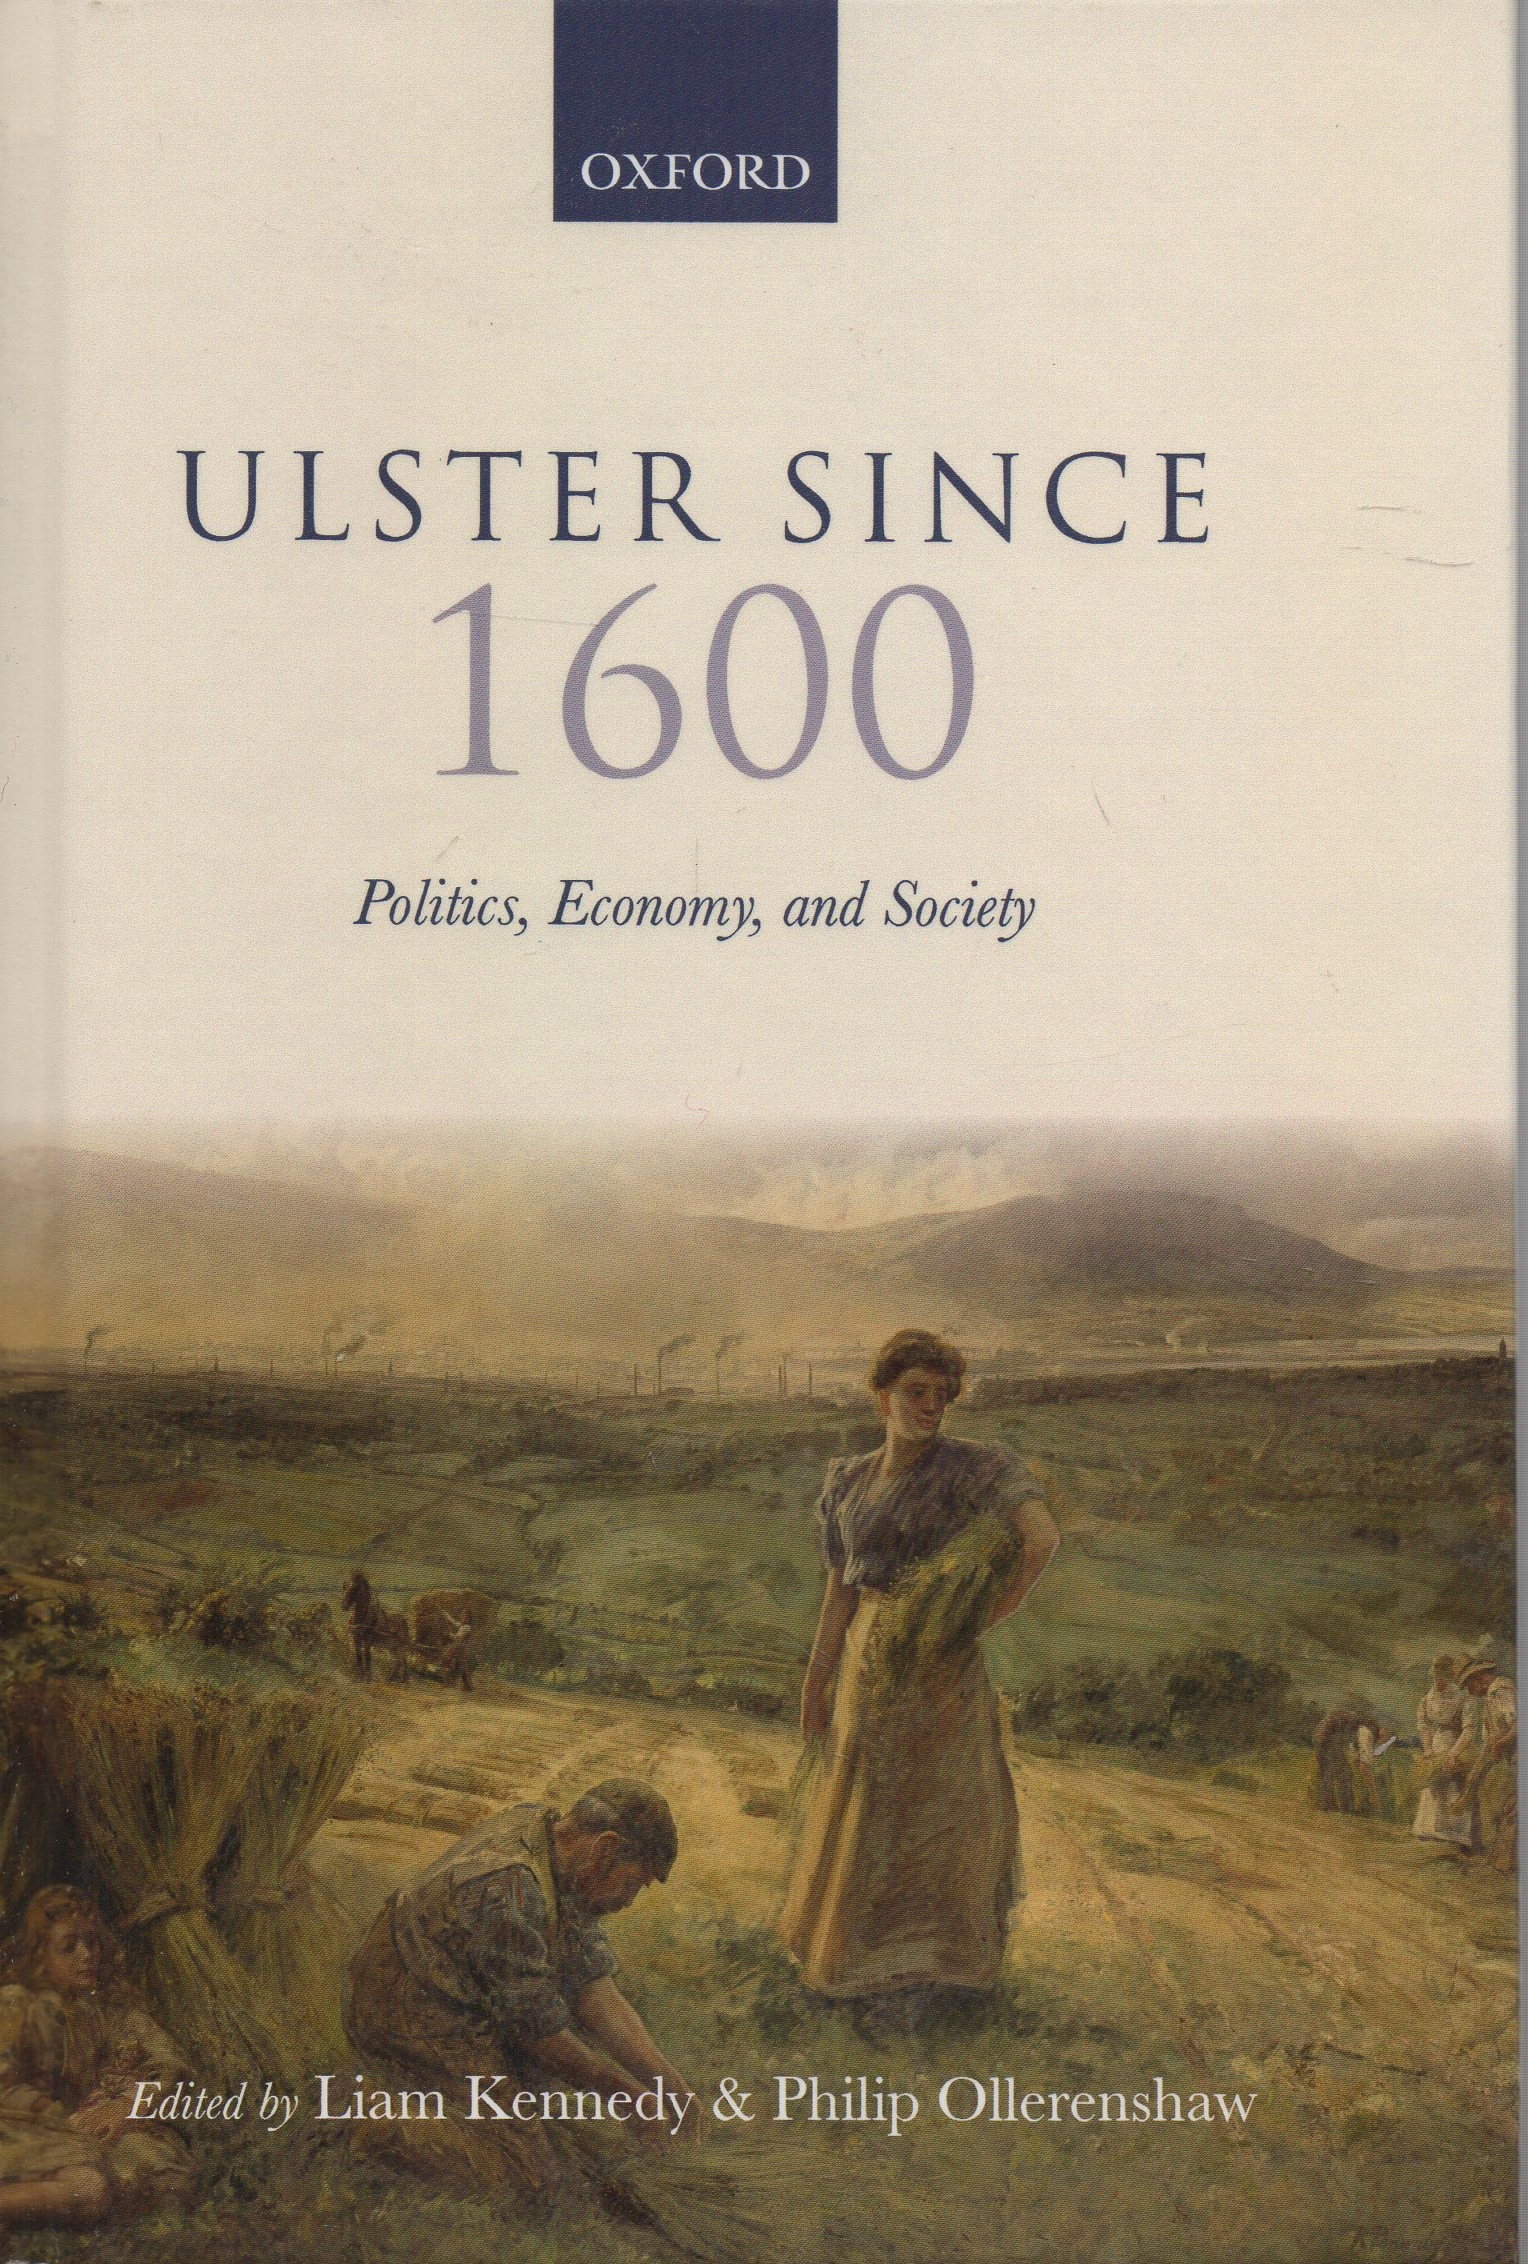 KENNEDY, LIAM & PHILIP OLLERENSHAW (EDS.) - Ulster since 1600: Politics, Economy, and Society